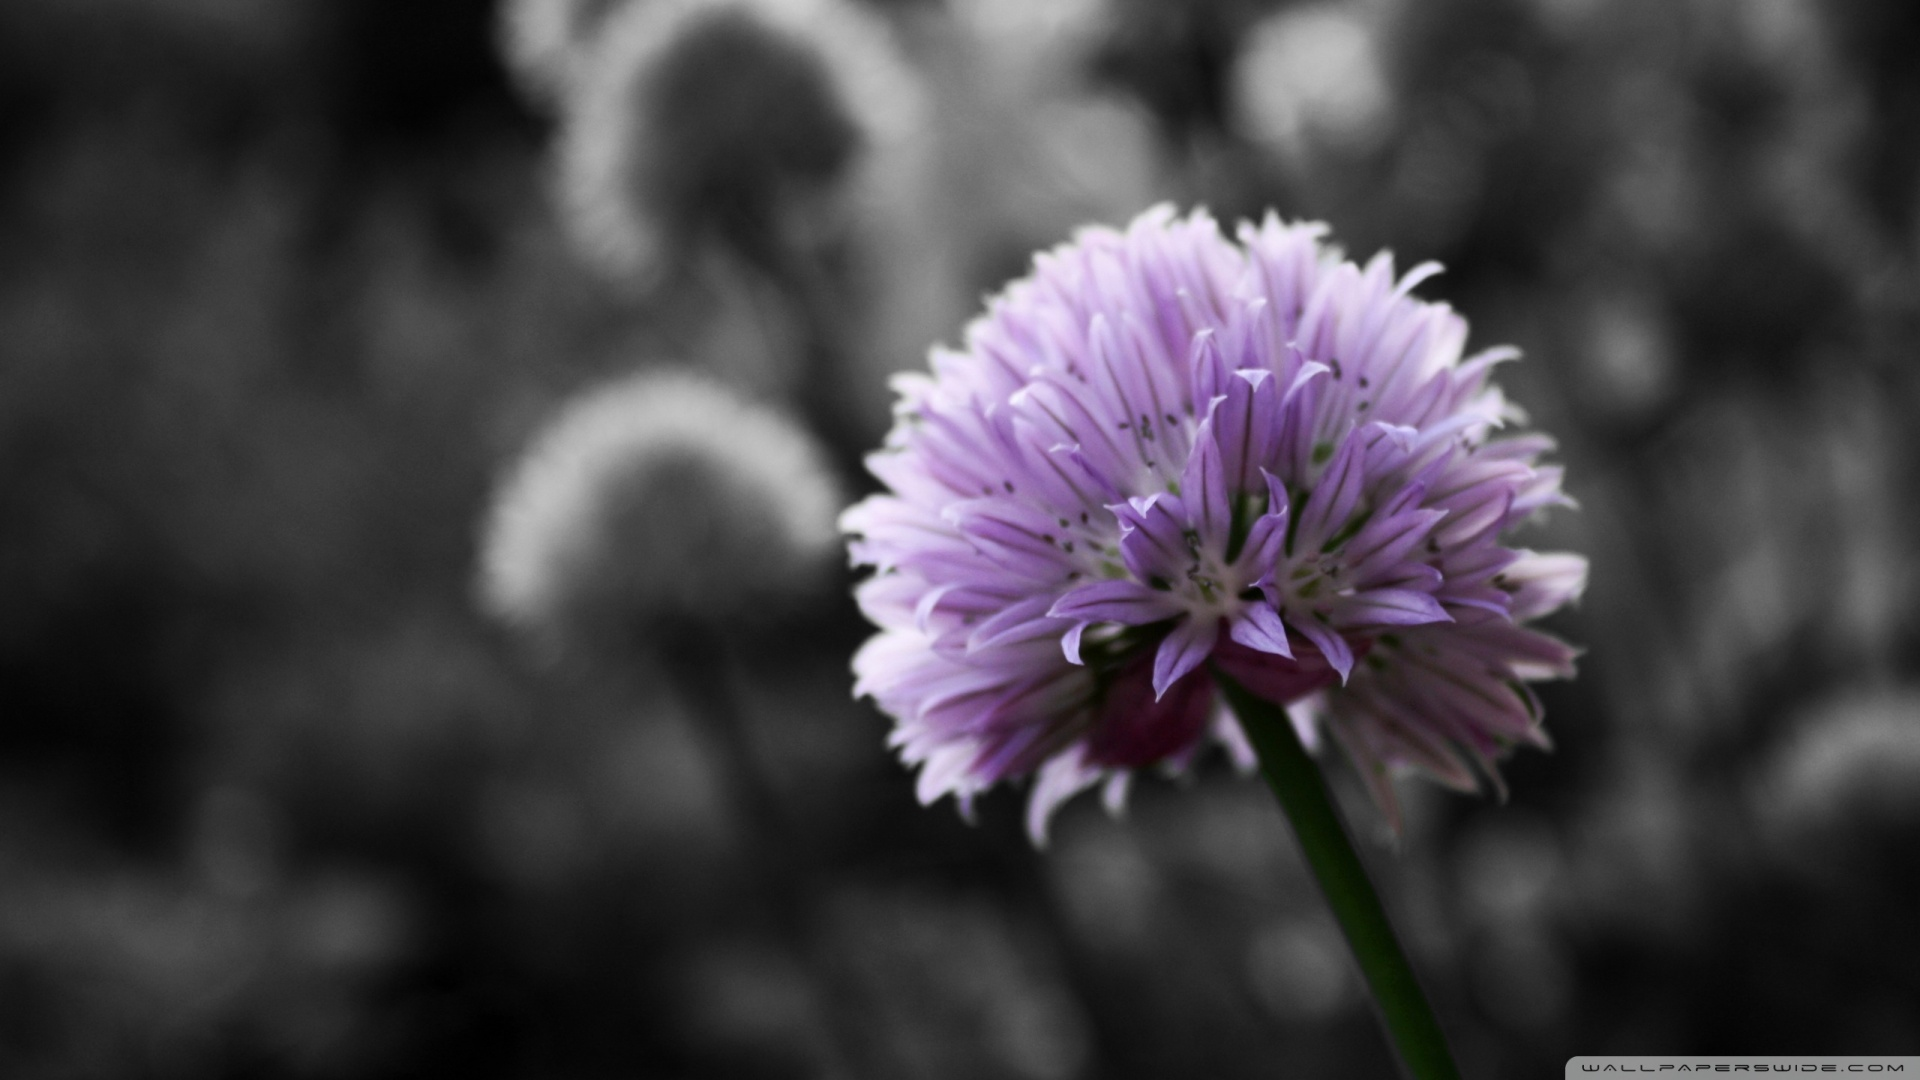 Purple Flower On Black And White Background Wallpaper 1920x1080 Purple 1920x1080